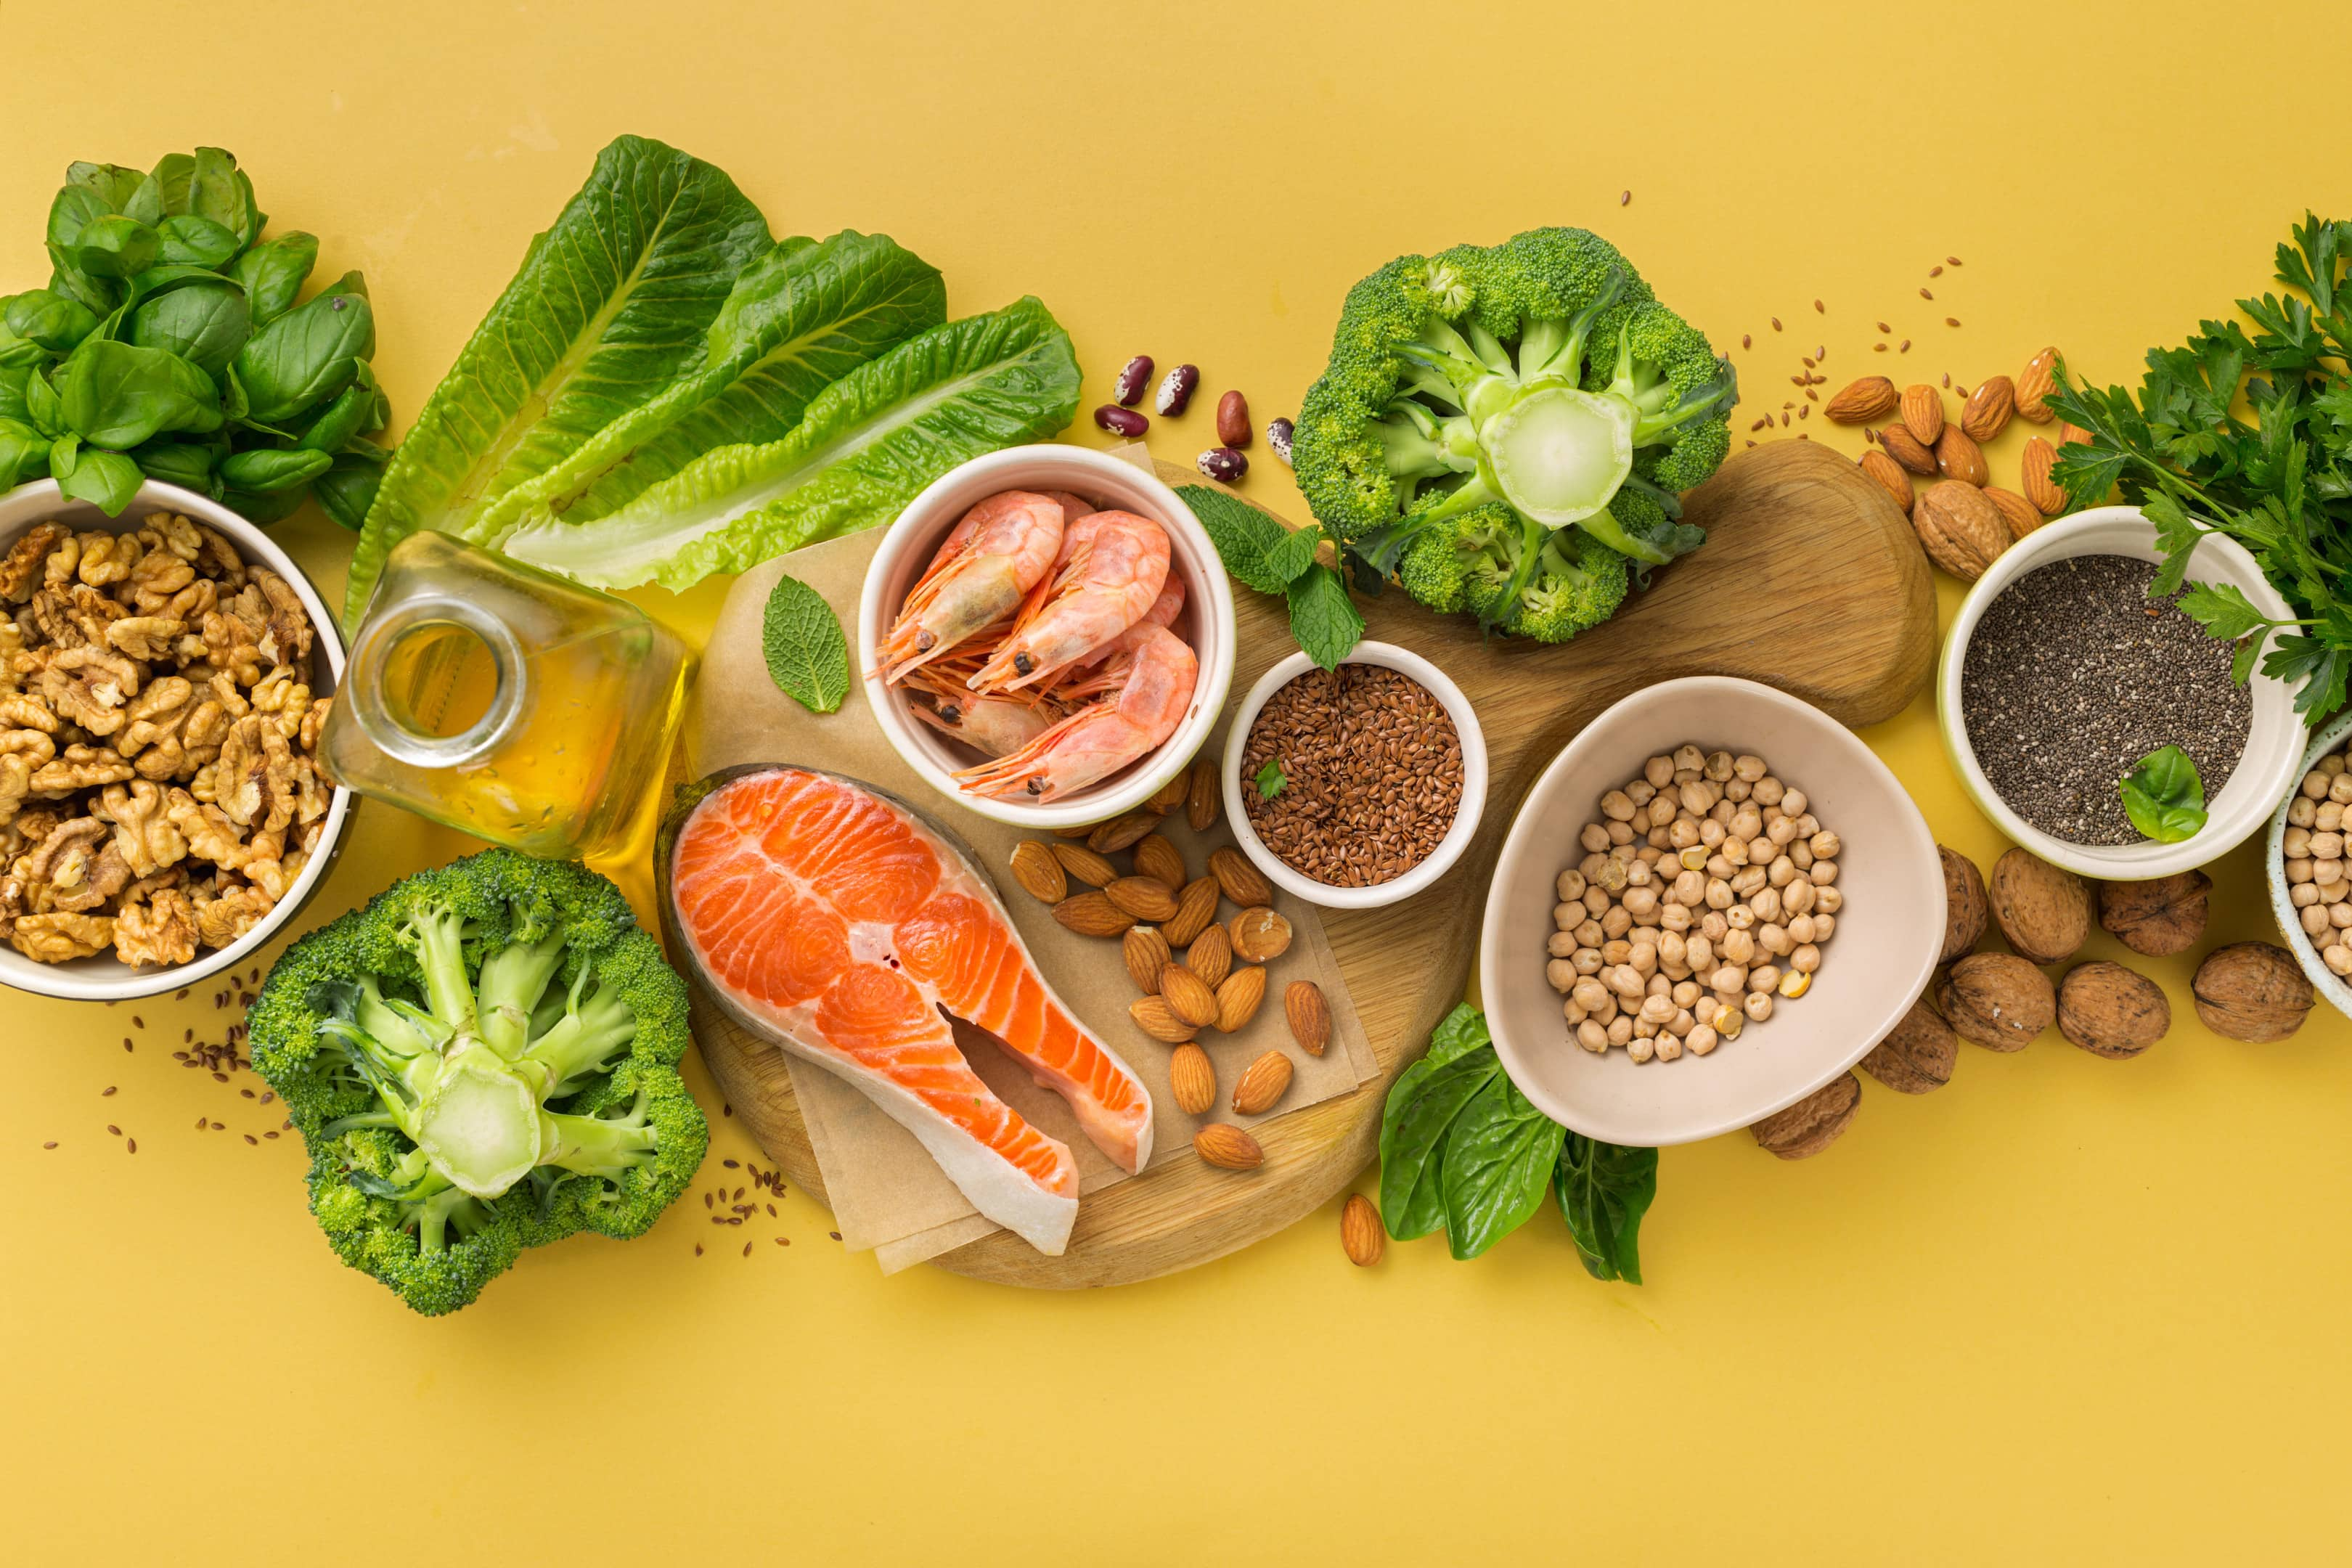 Omega-3 food sources that are high in fatty acids